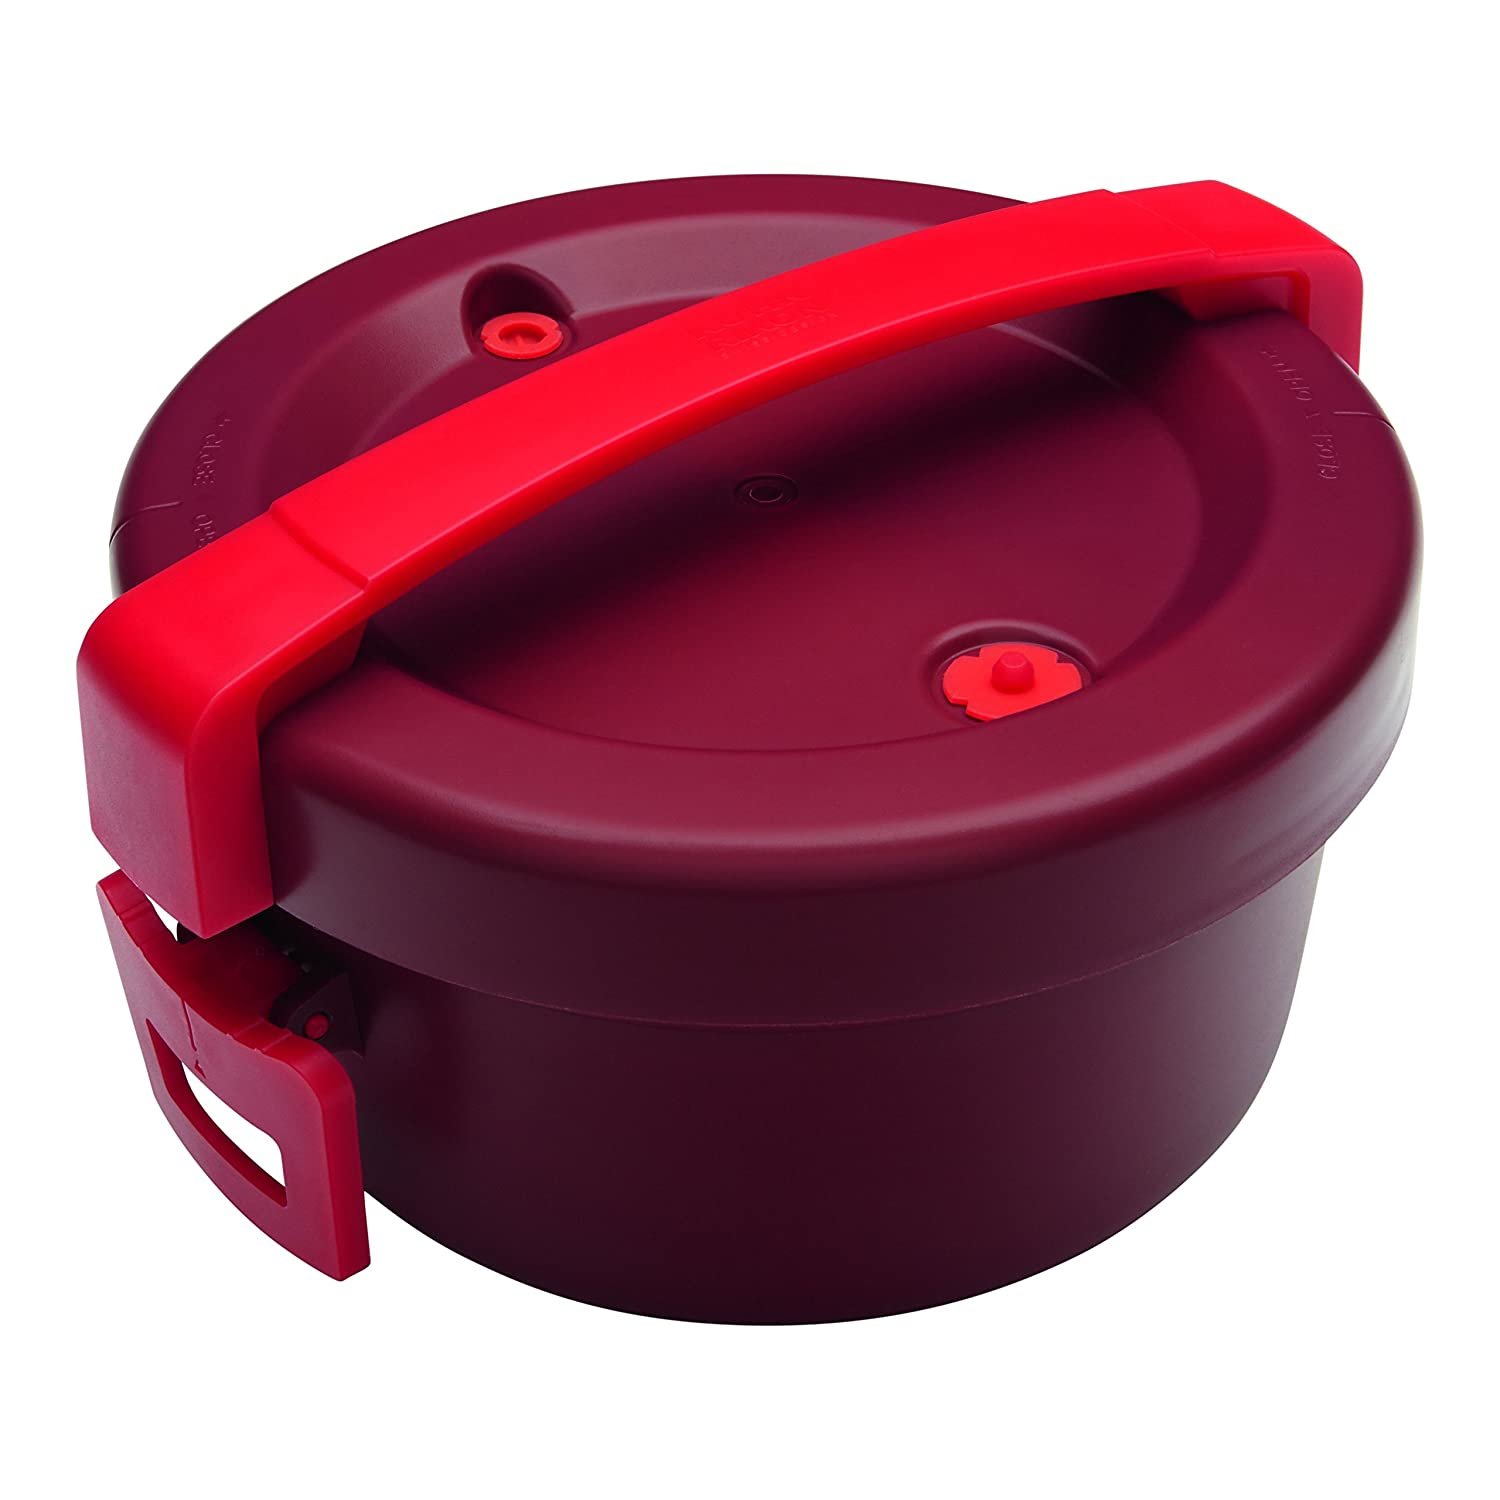 Kuhn Rikon Duromatic Micro Microwave Pressure Cooker - Red 31581